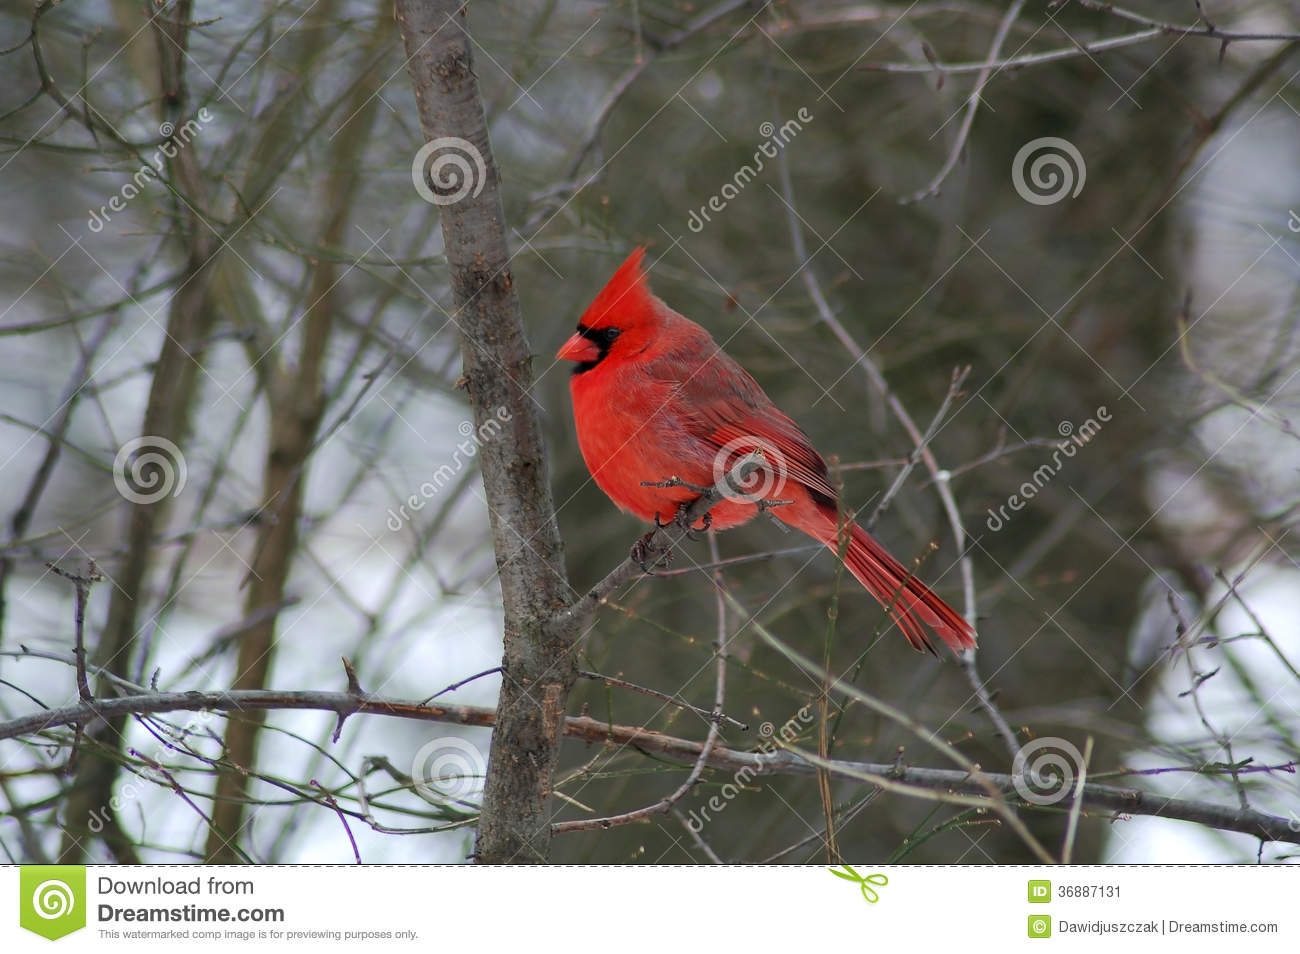 Download Cardinale Nordico (cardinalis Di Cardinalis) Immagine Stock - Immagine di cute, biologia: 36887131